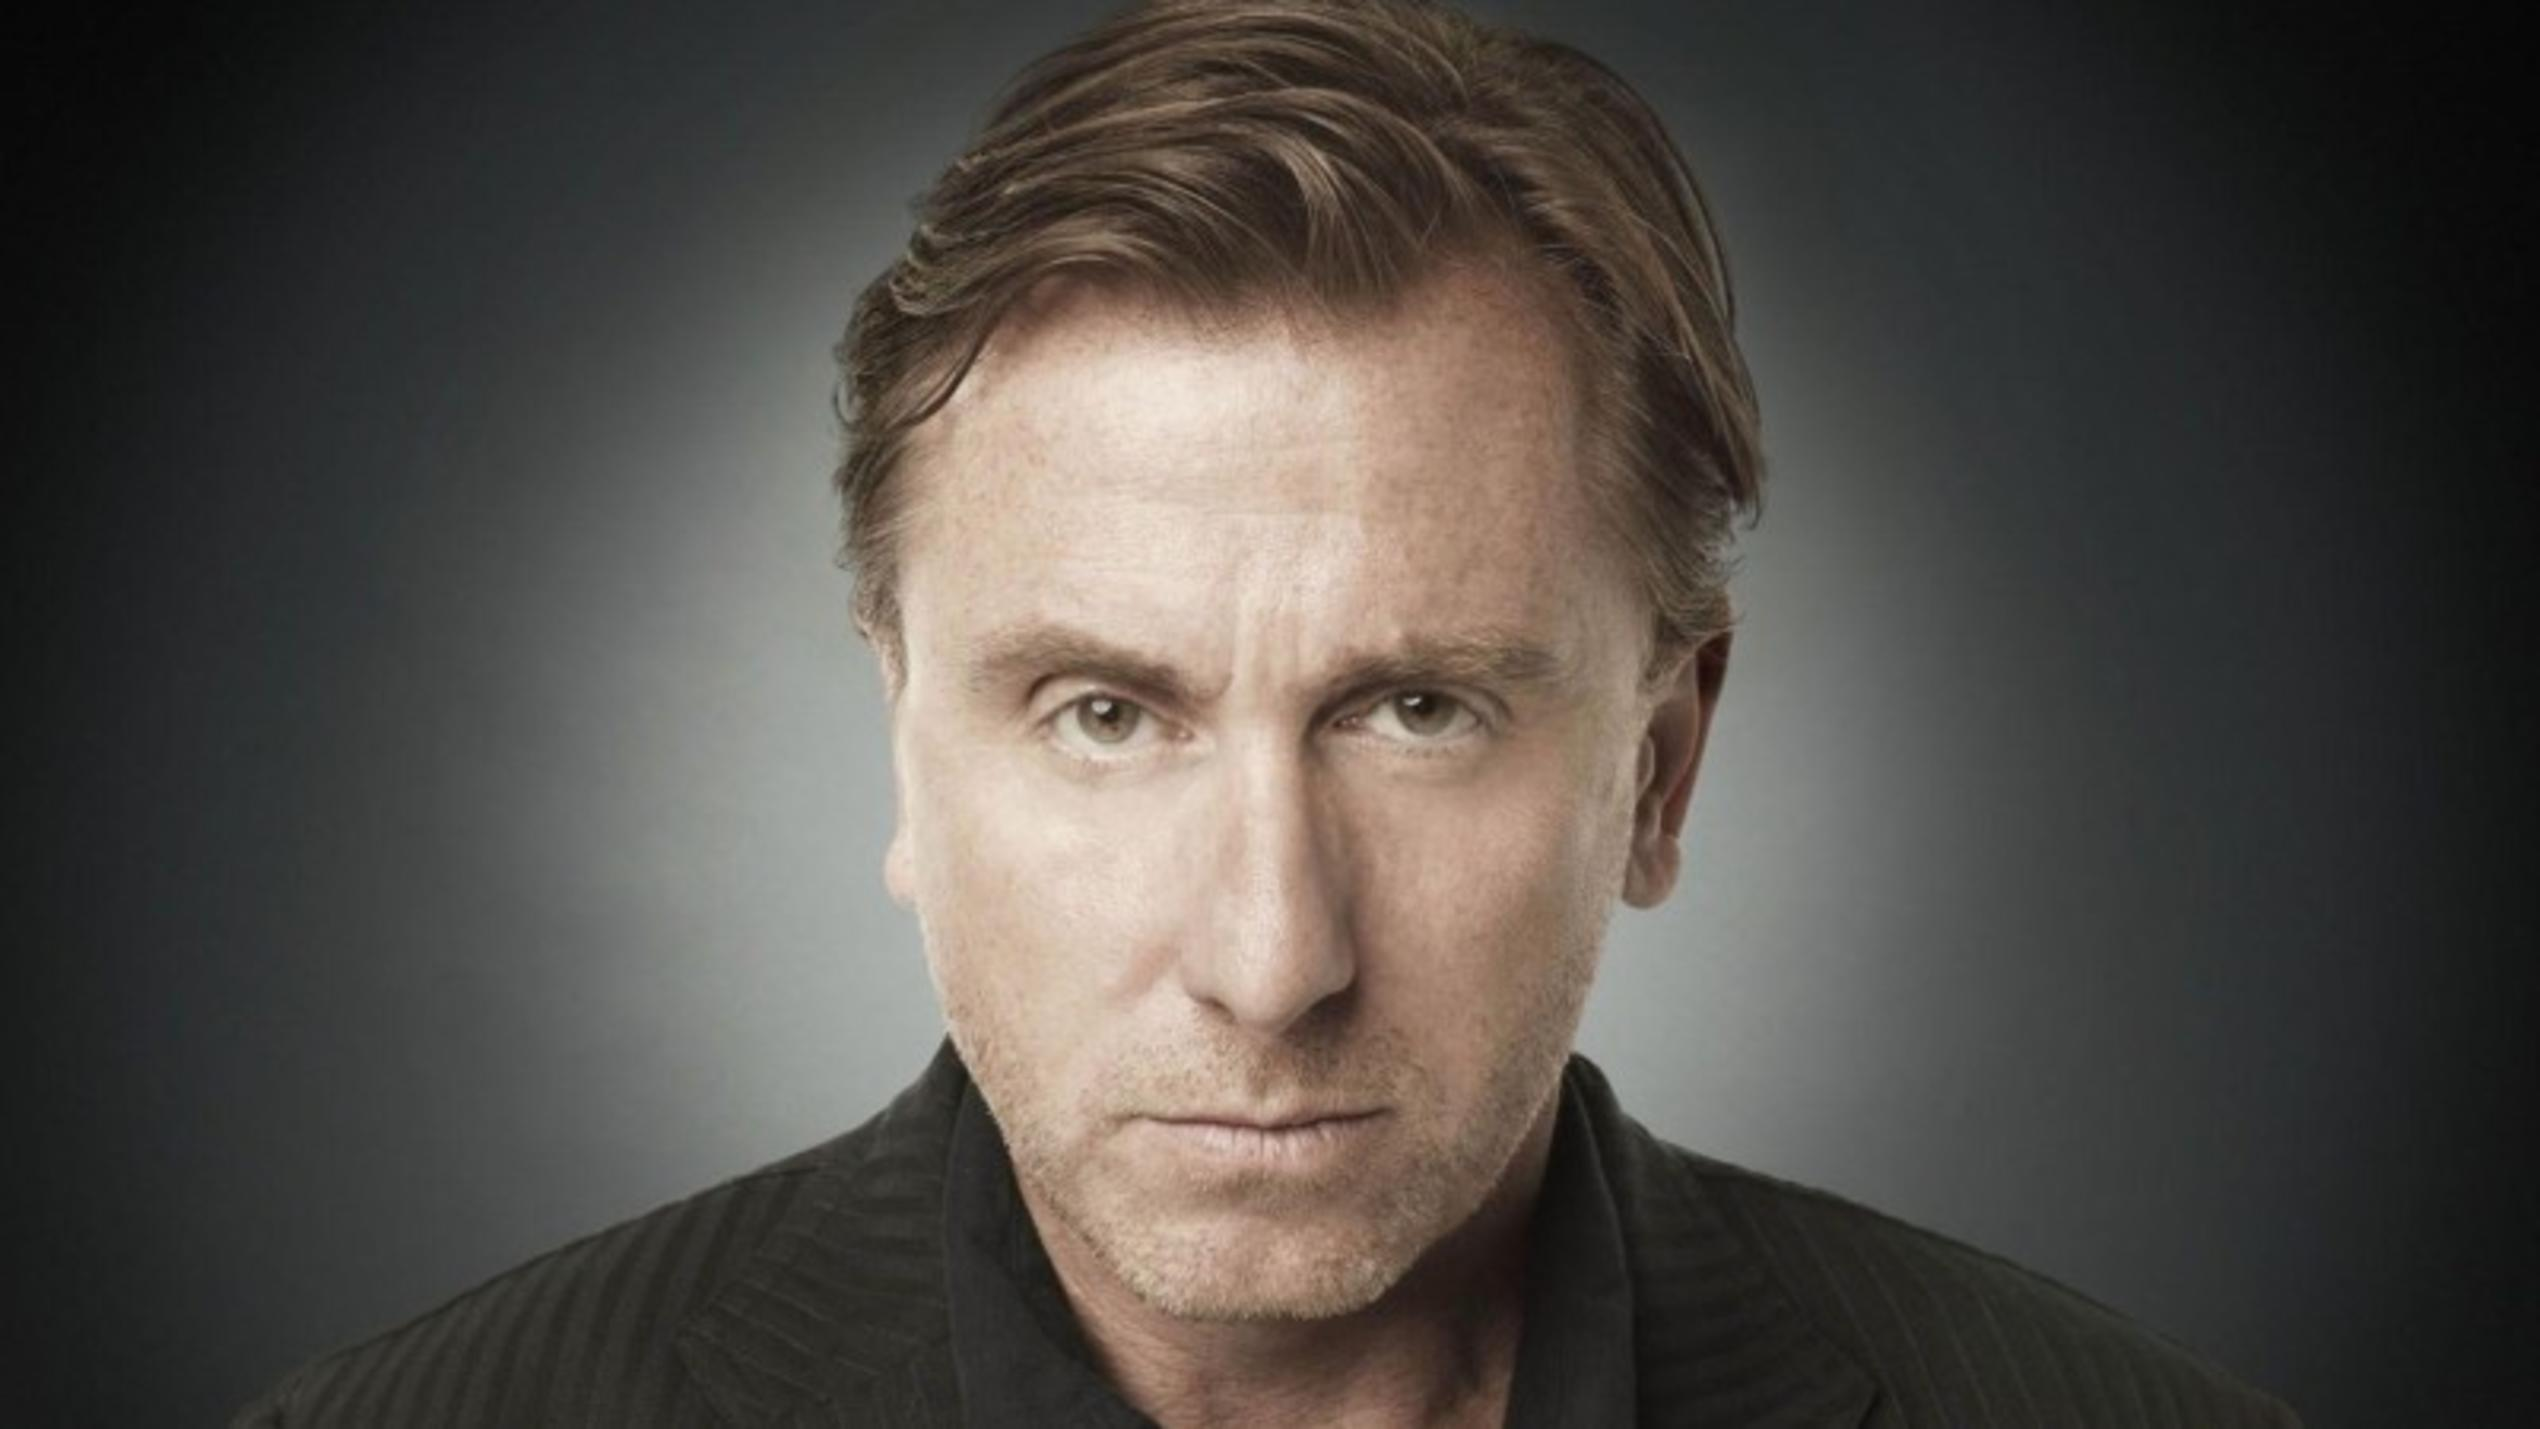 Tim Roth in Lie to me